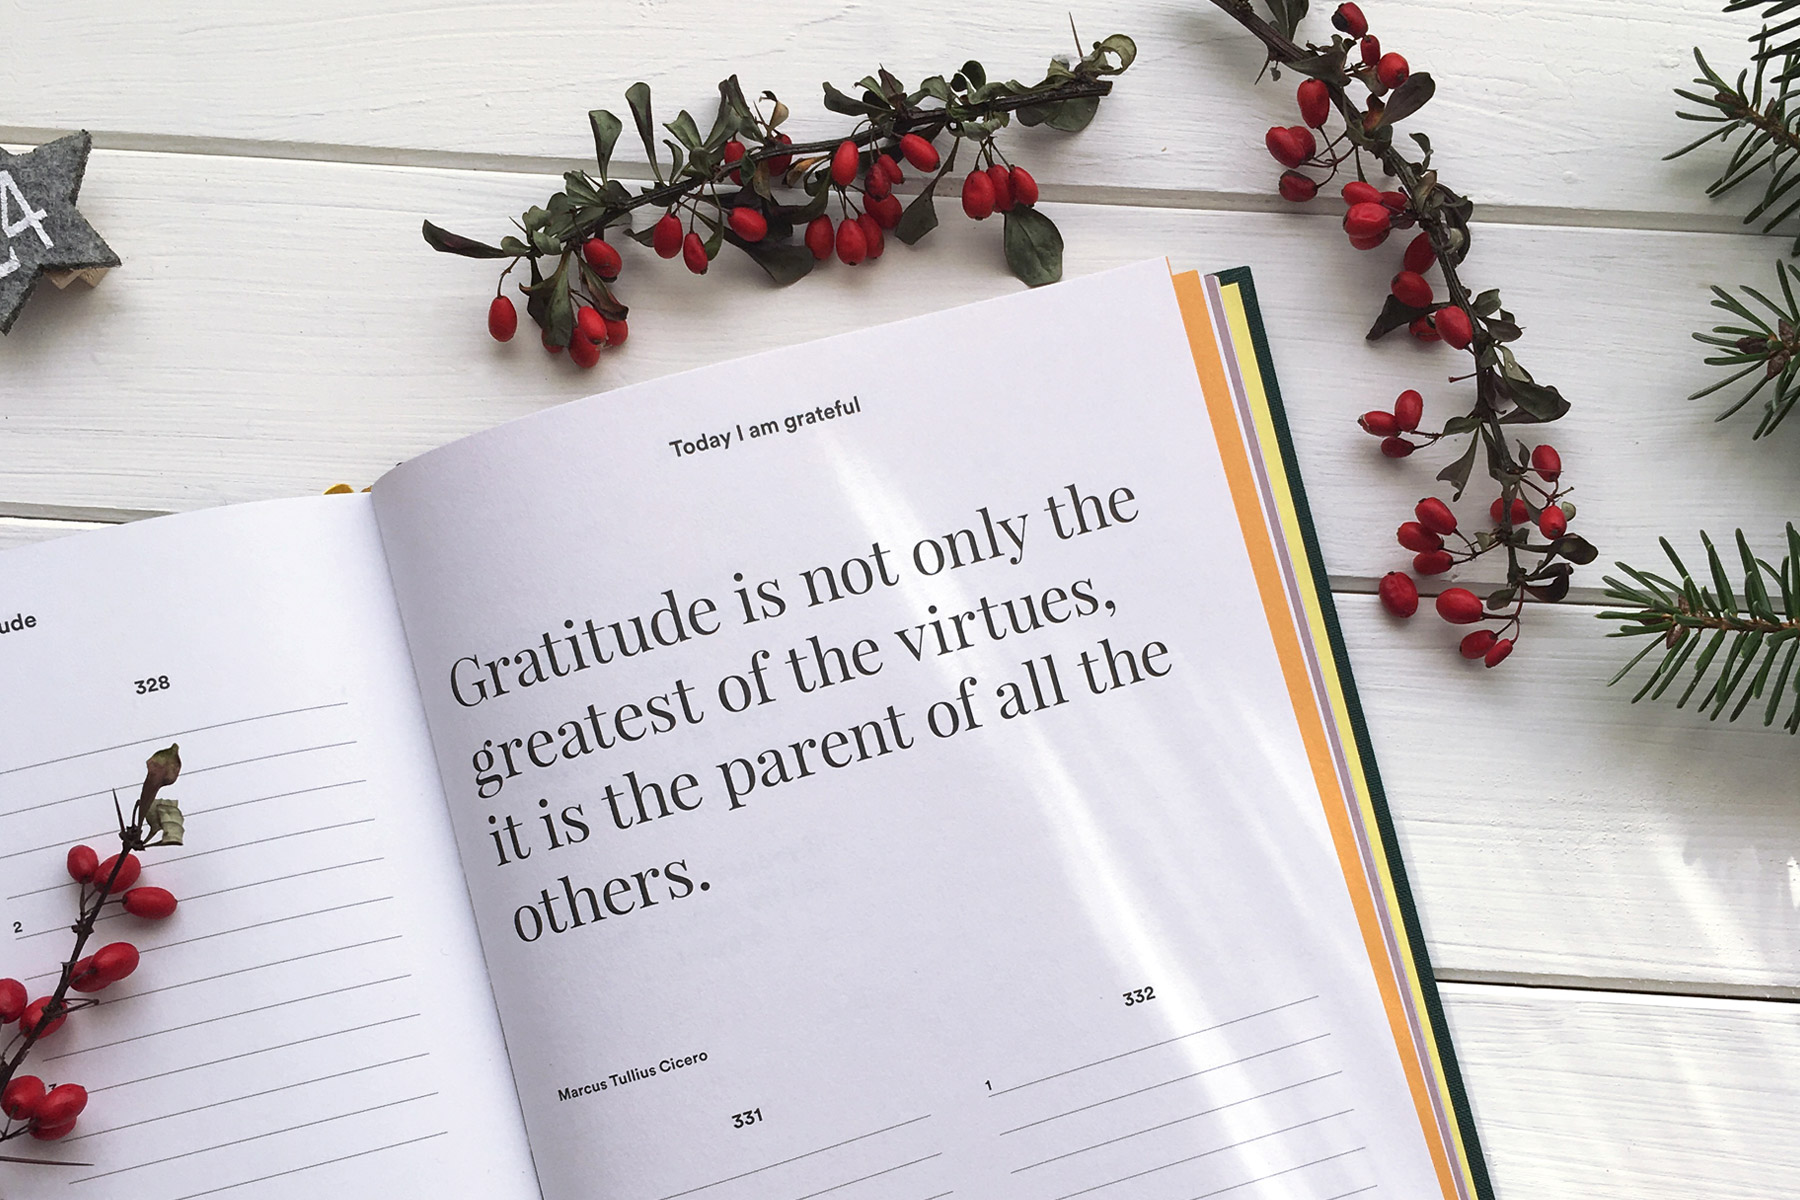 Gratitude is not only the greatest of the virtues... - image by The Gratitude Attitude